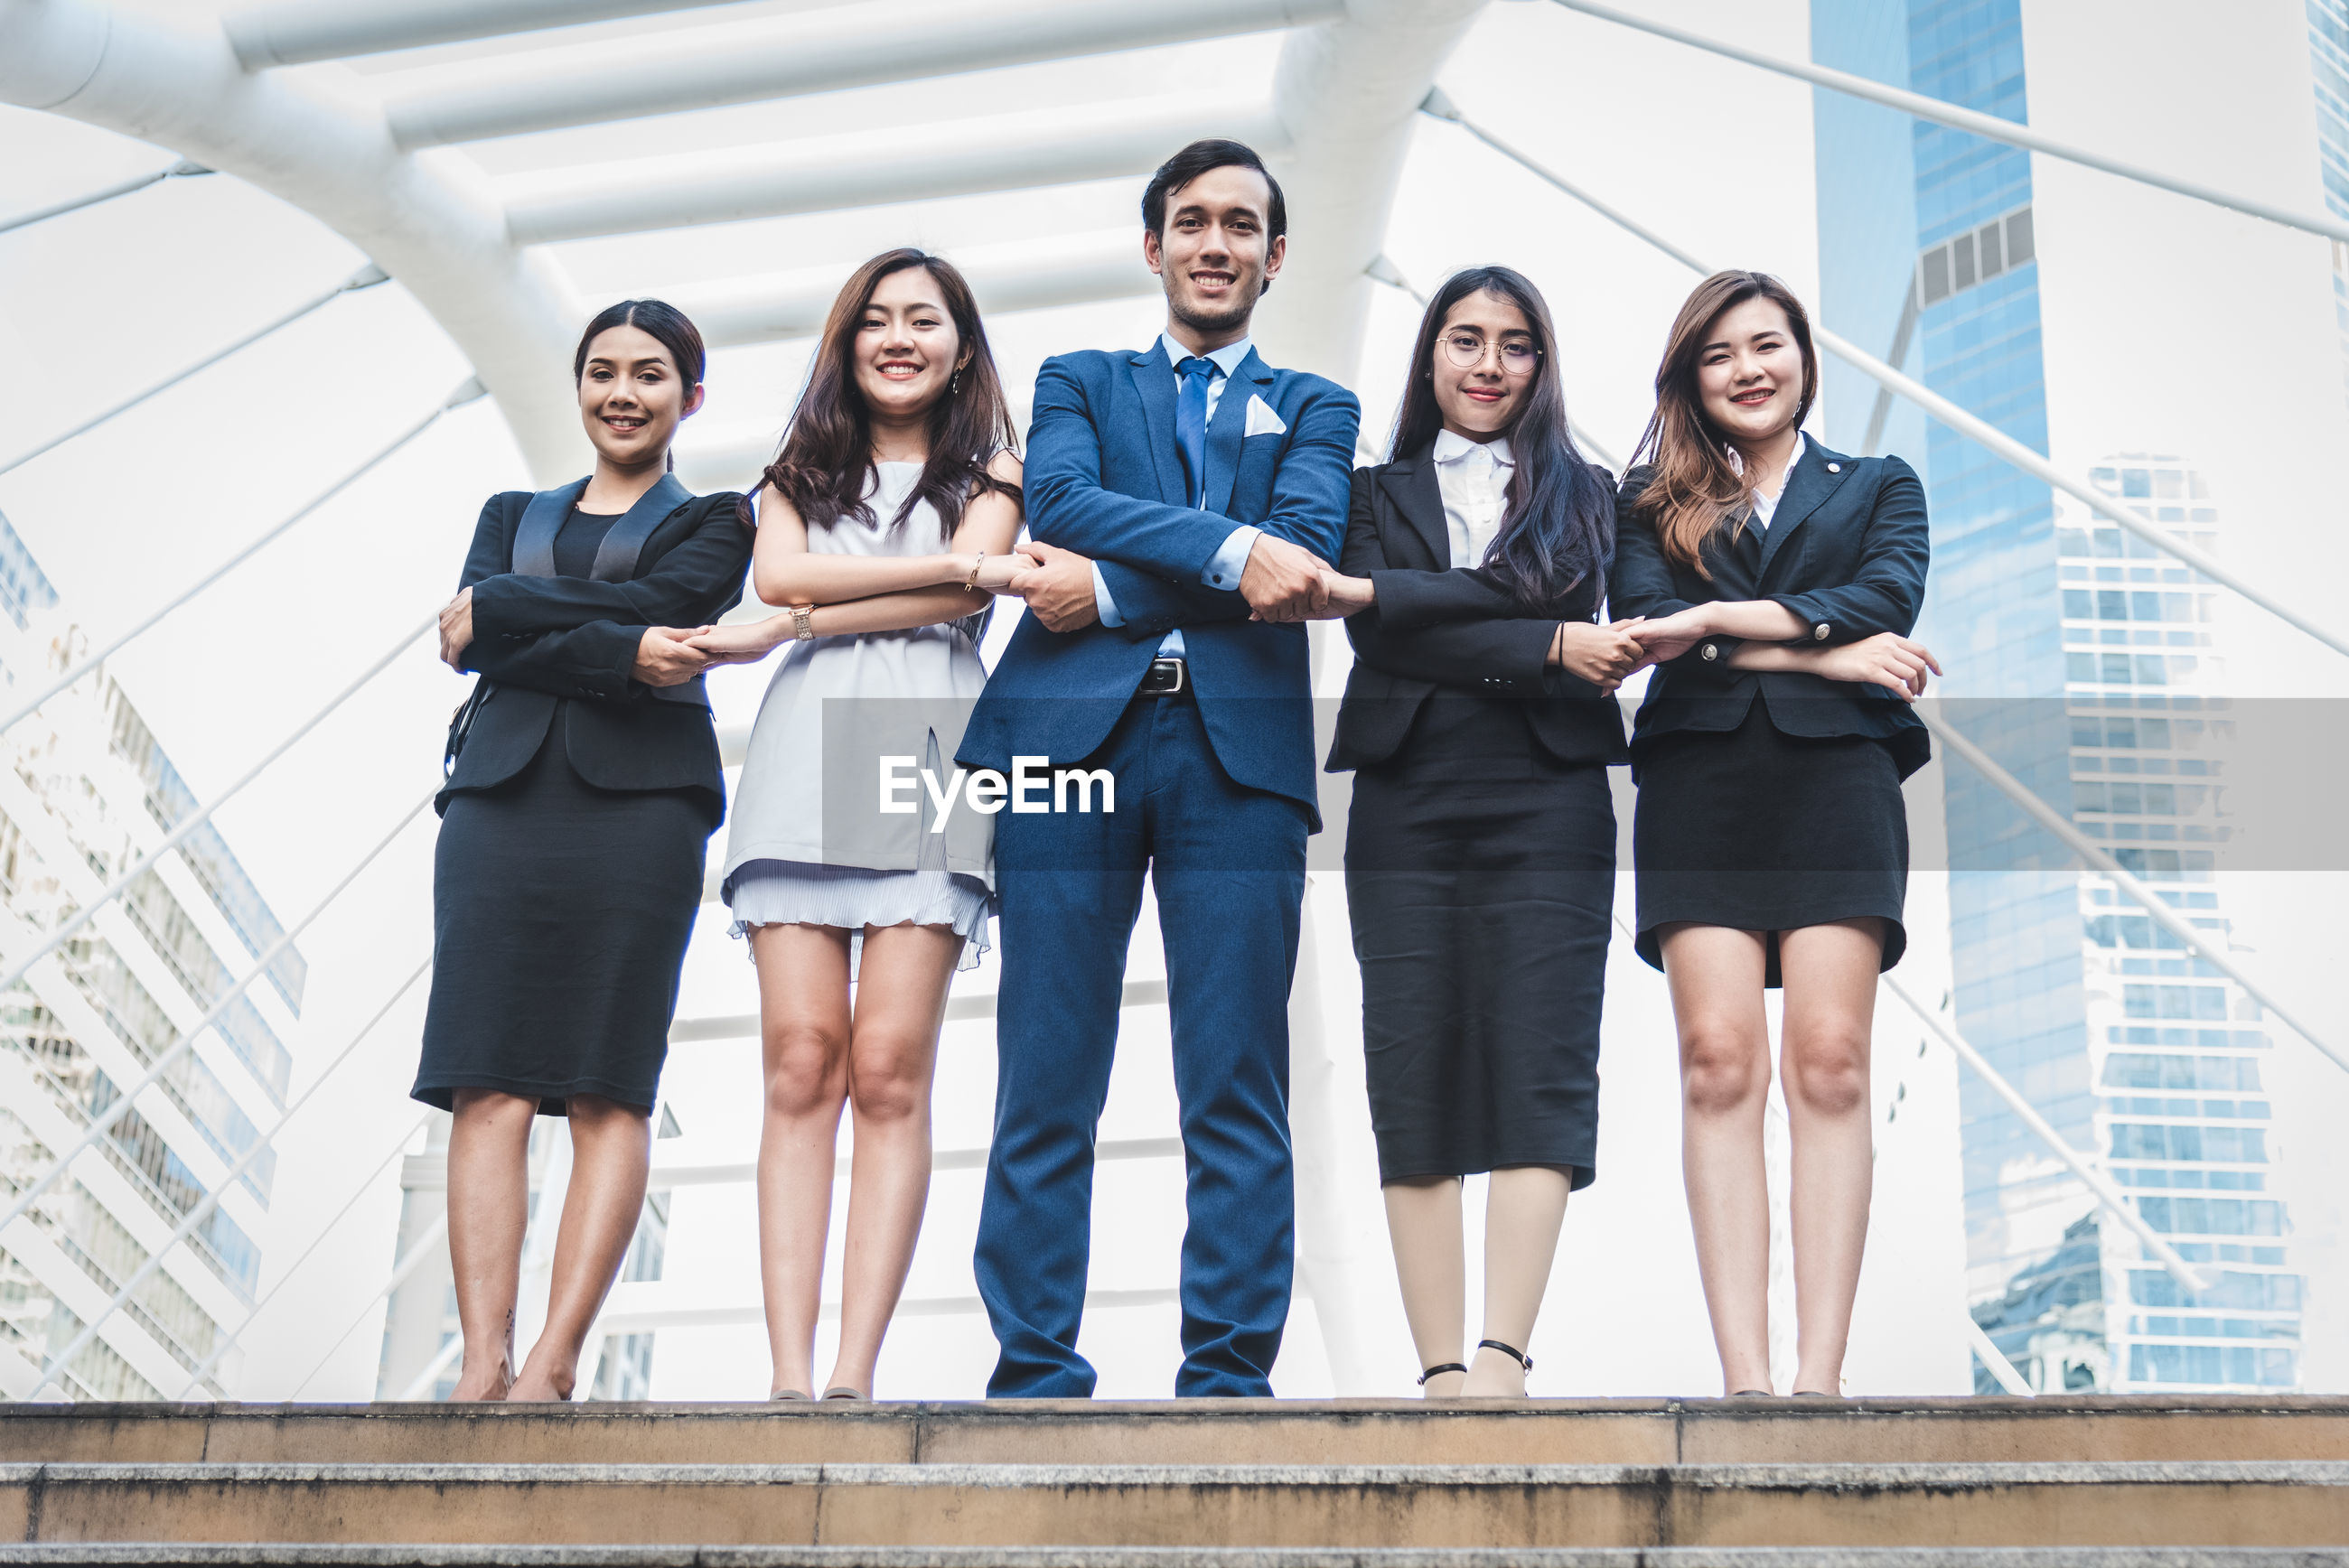 Full length portrait of smiling business people holding hands while standing outdoors